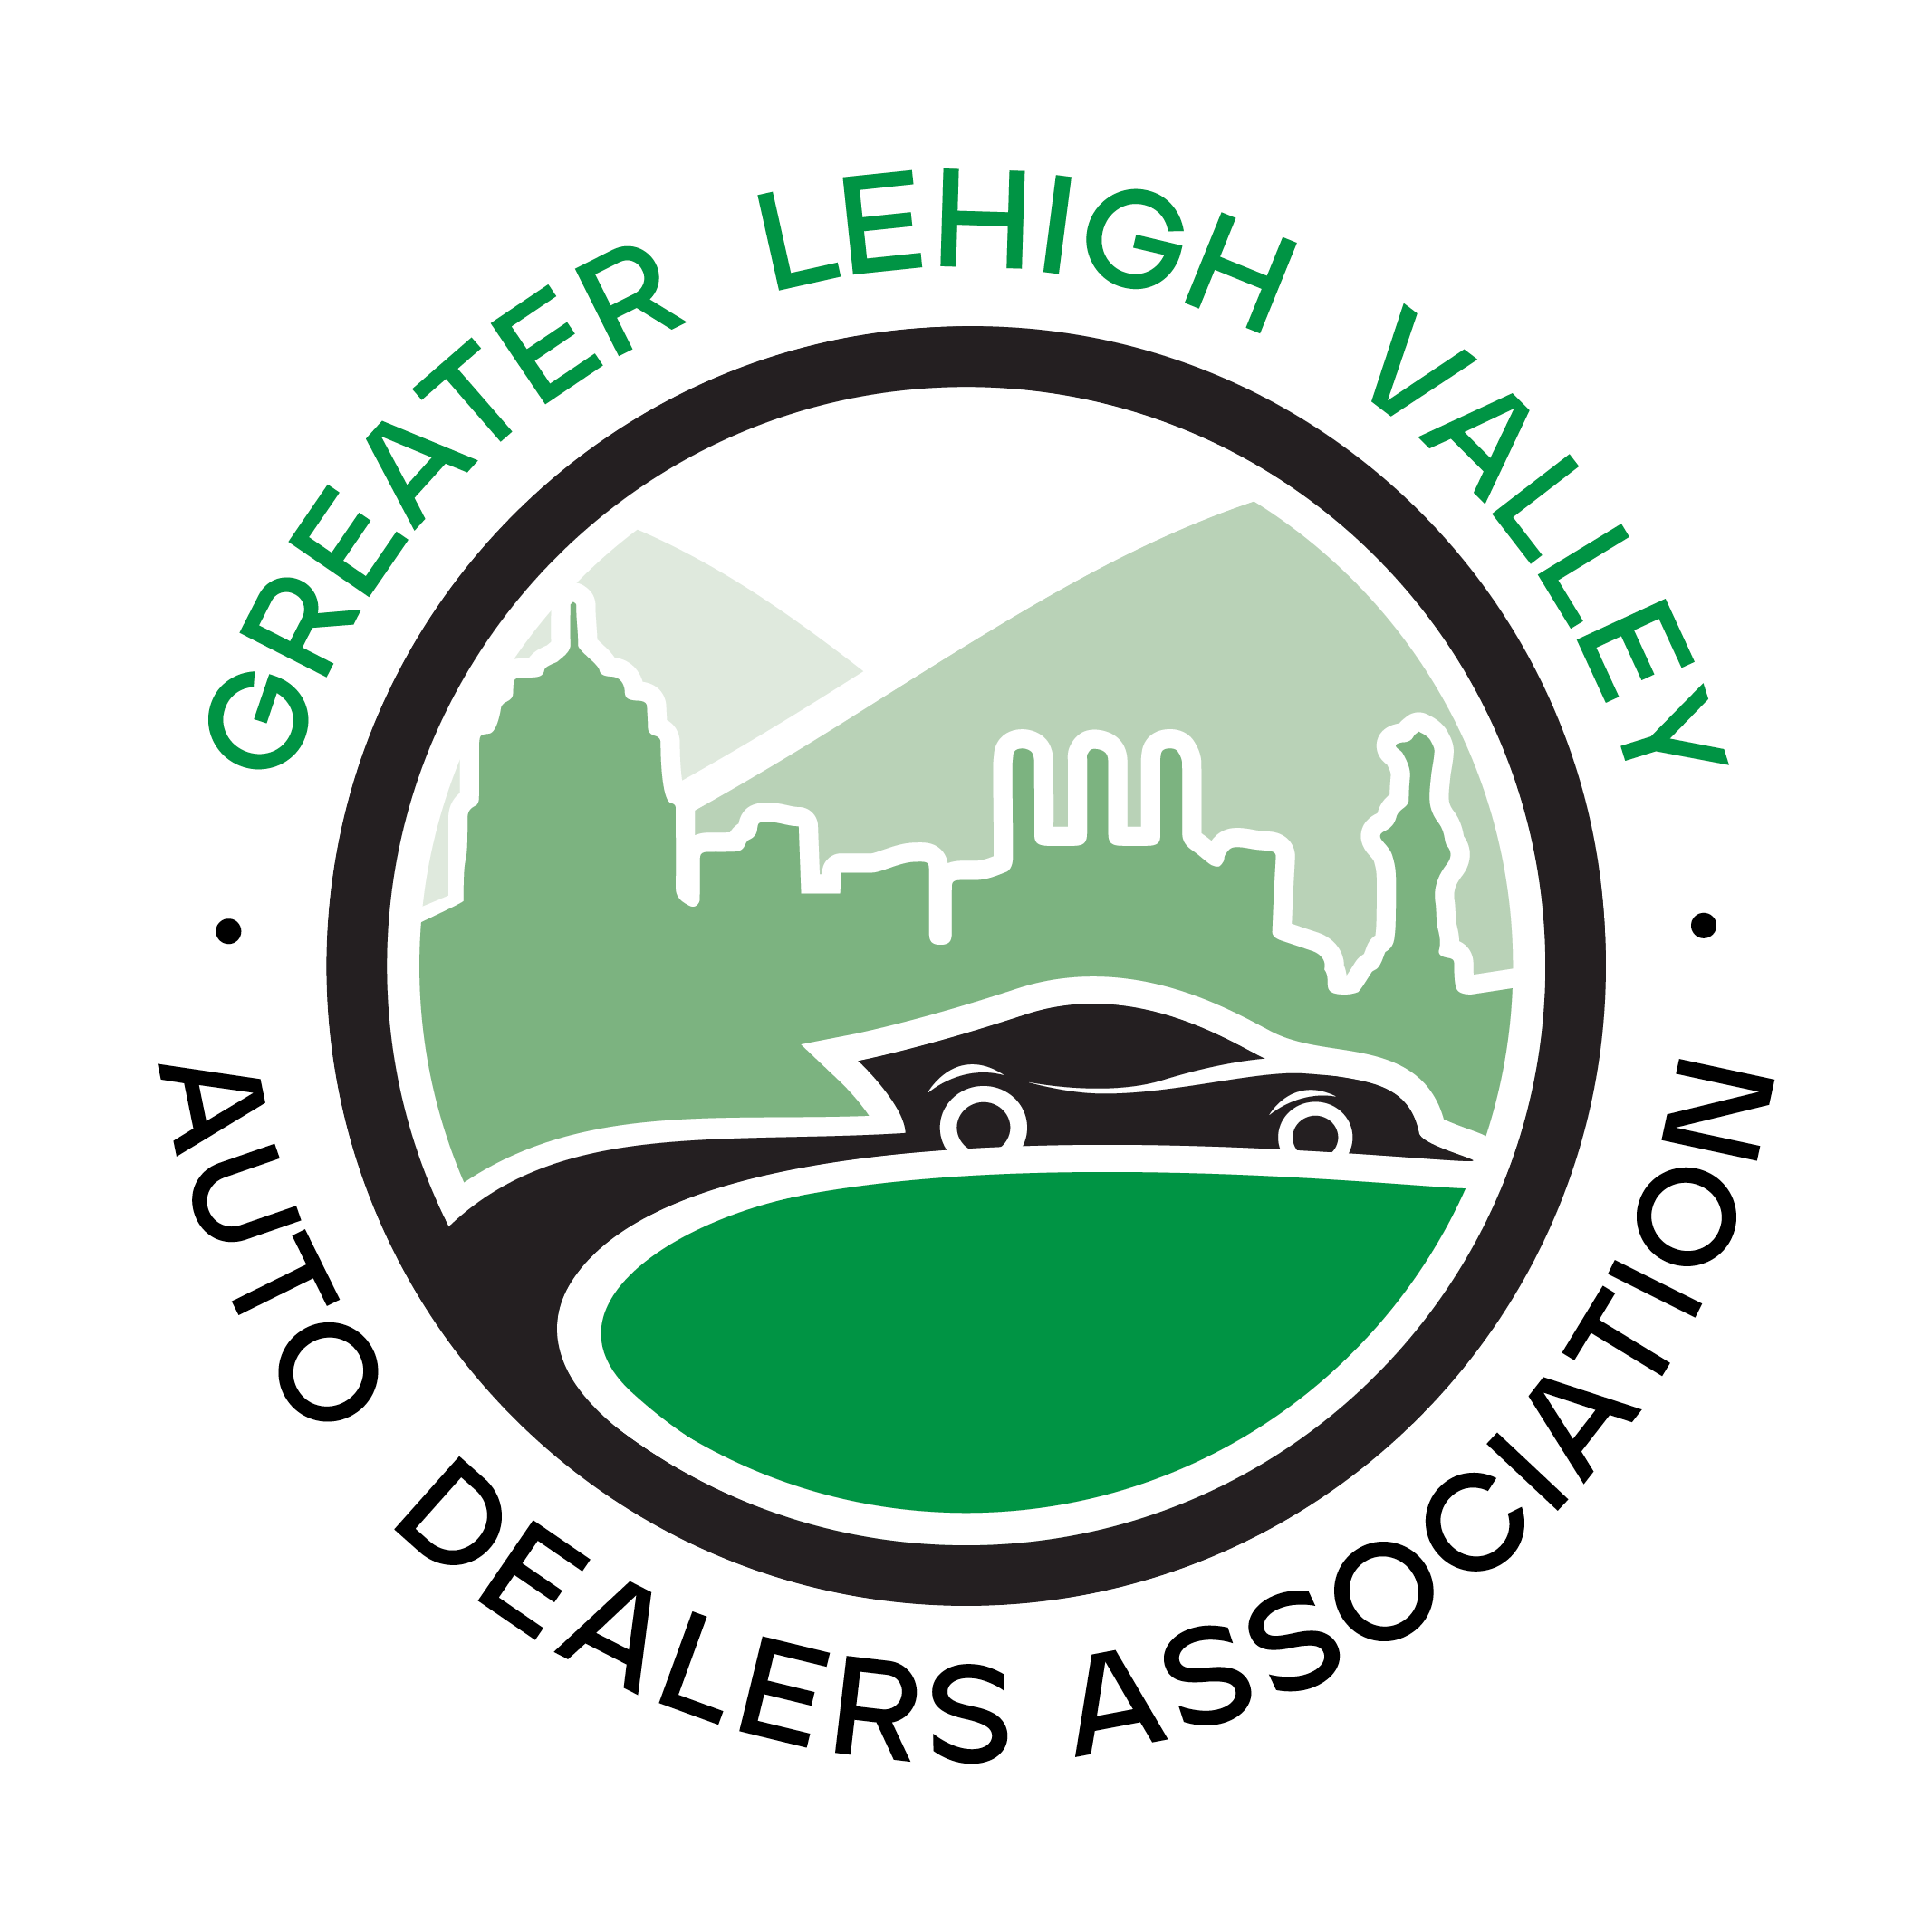 Lehigh Valley Auto Dealers Association